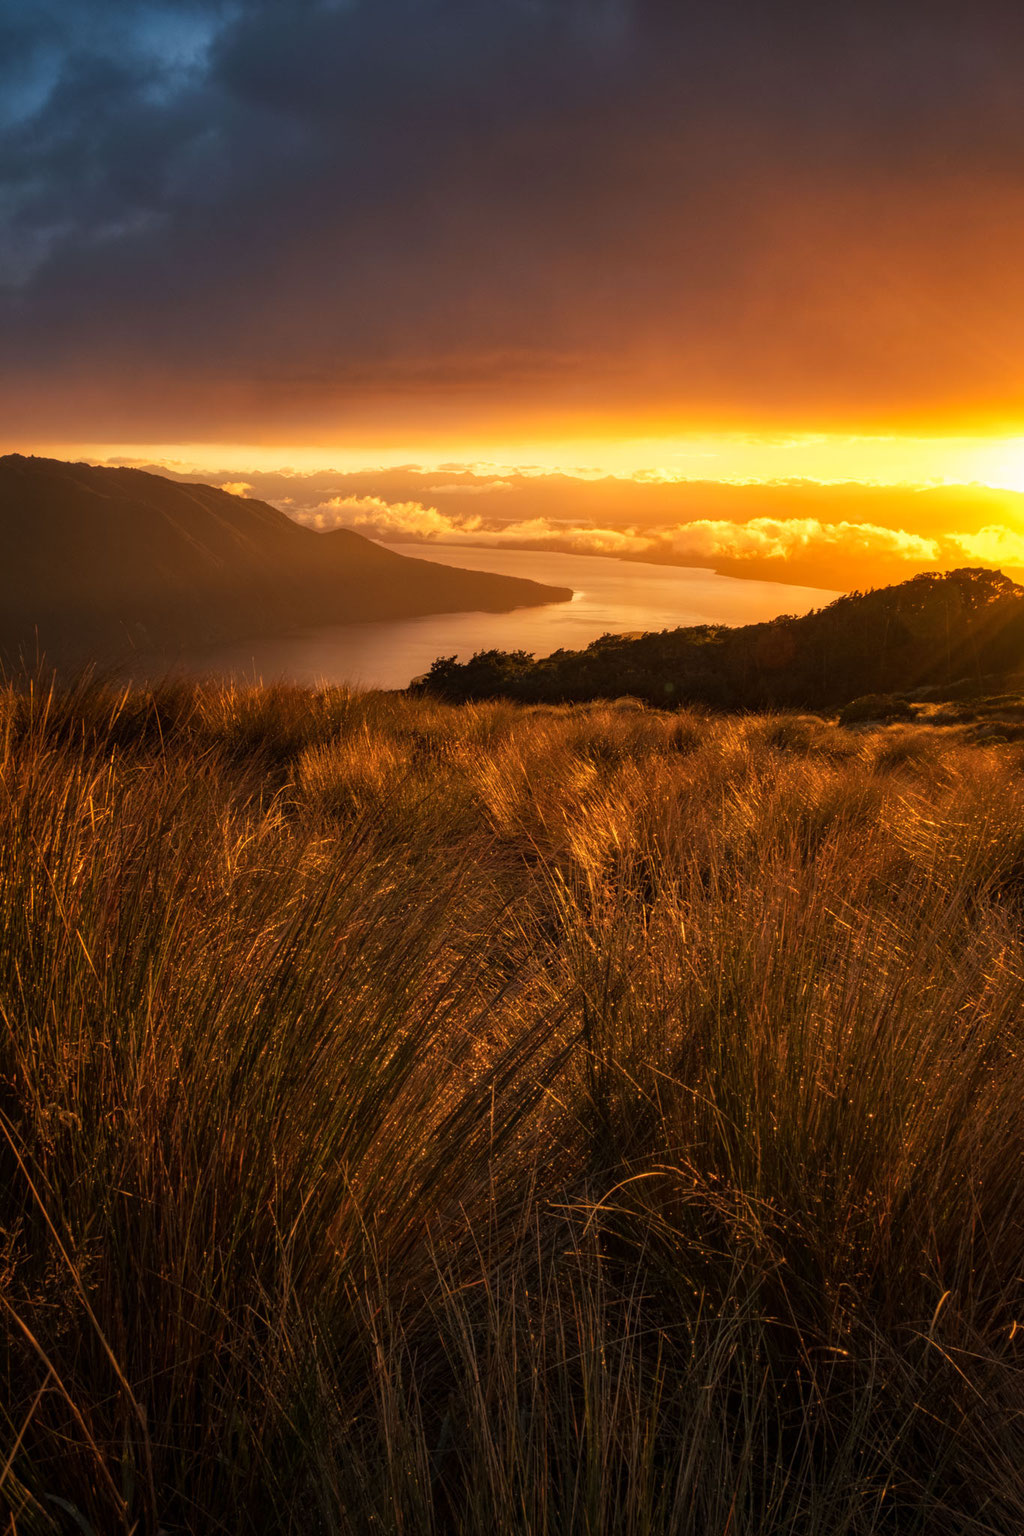 sunrise over Lake Te Anau as seen from the Kepler Track